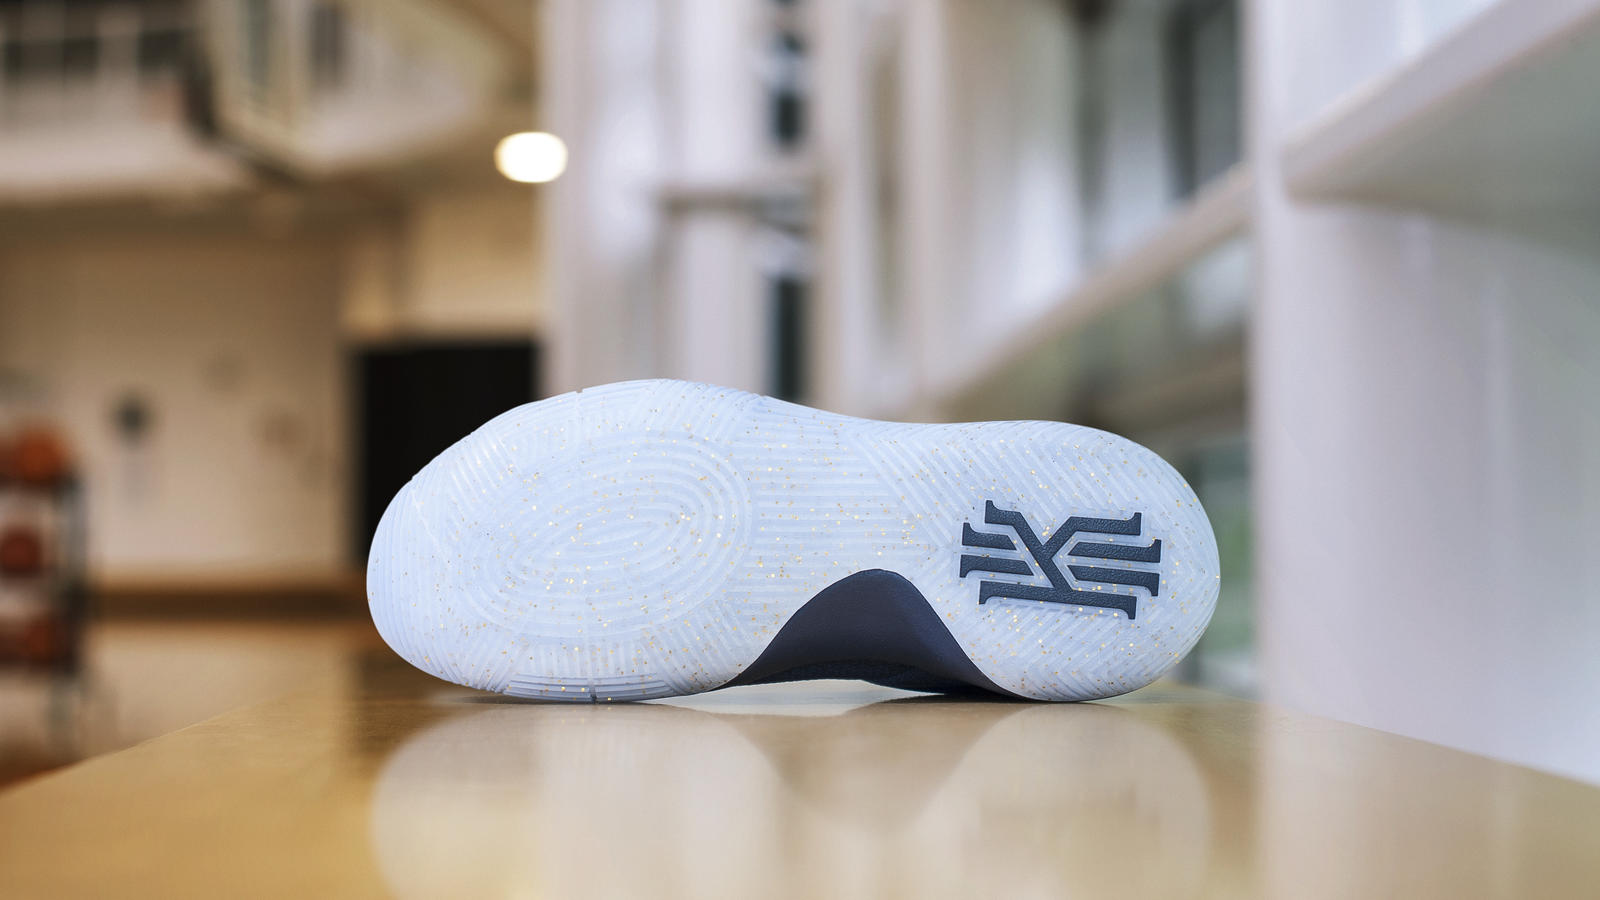 Kyrie navy dsc 4283 hd 1600